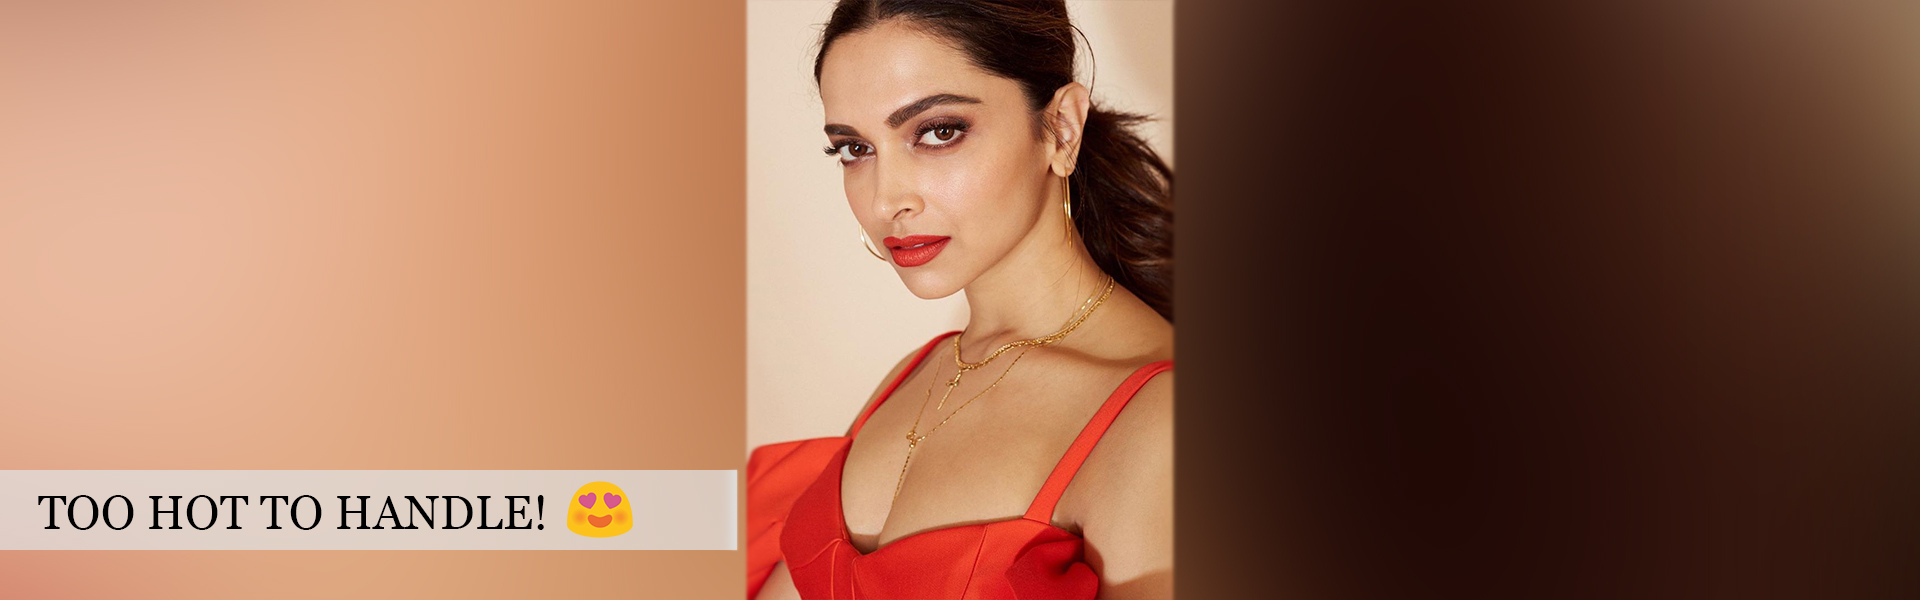 Deepika Padukone's picture sets the Internet on fire!